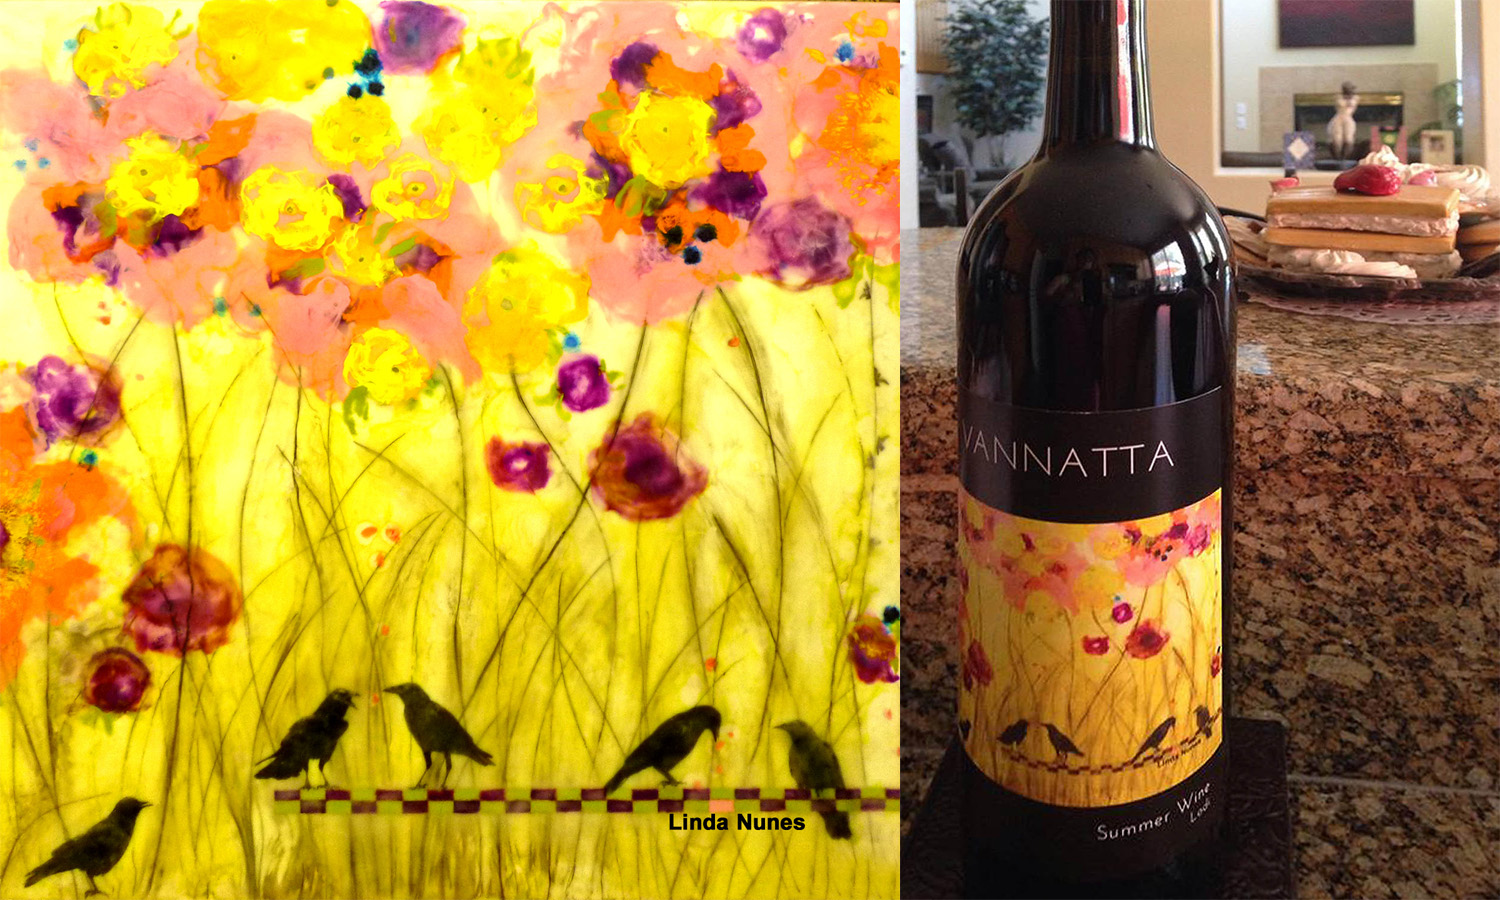 Vannatta Wine Label